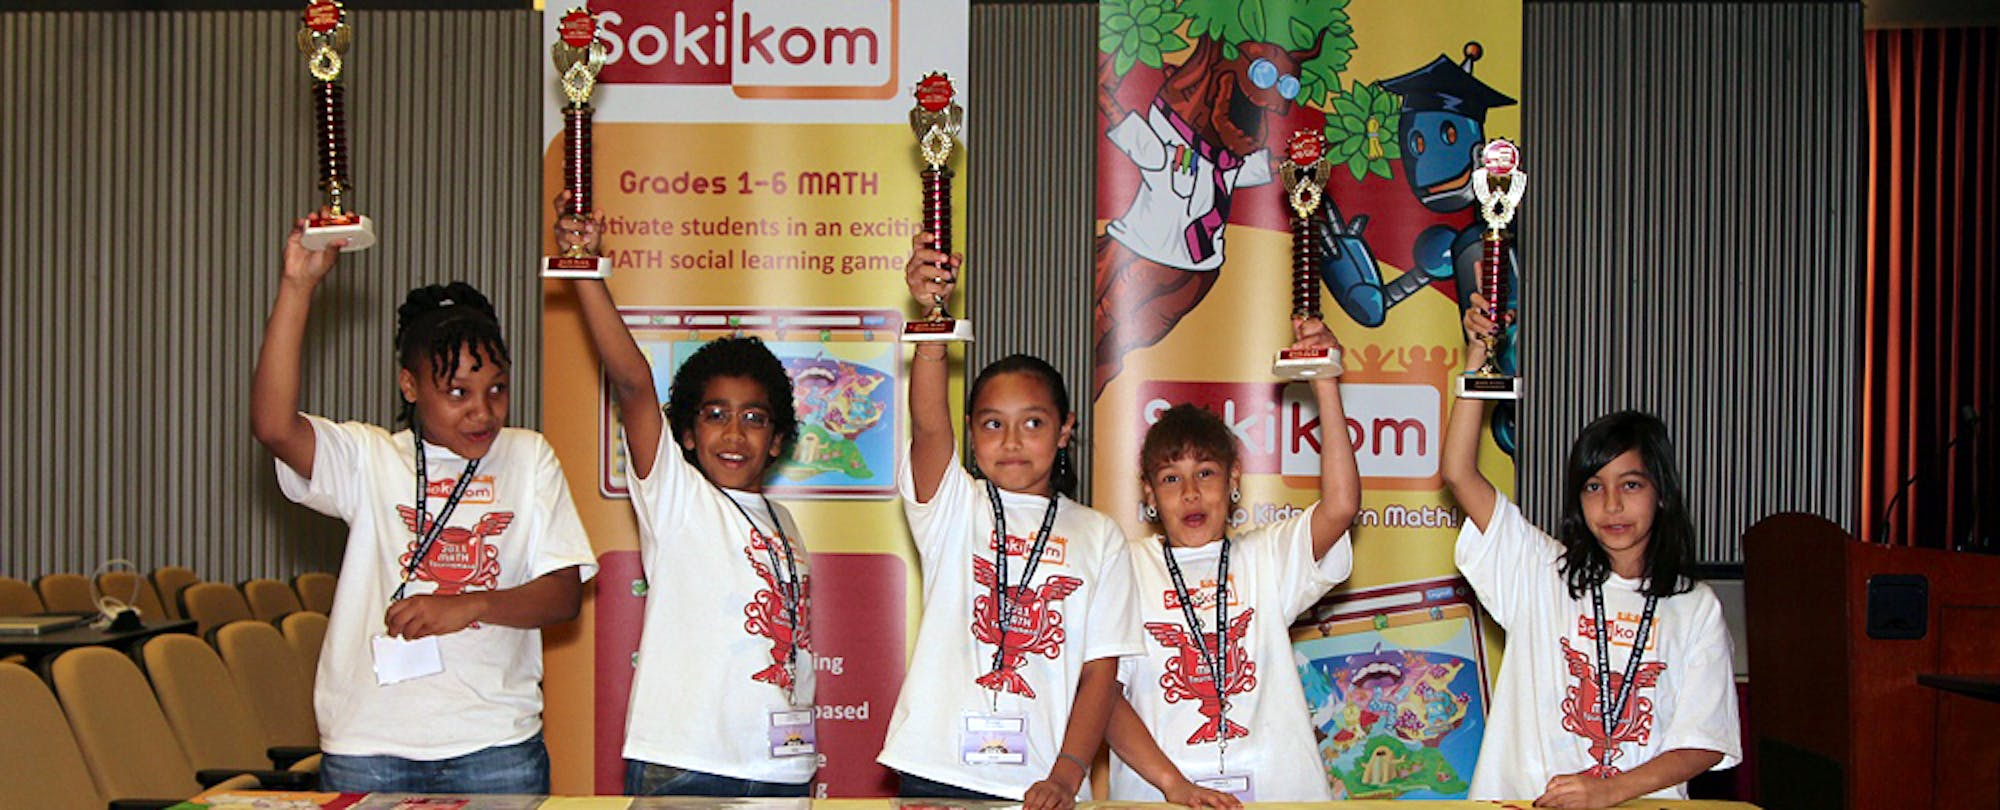 Sokikom Gets $1M from the Dept. of Ed. to Make Math Games Work